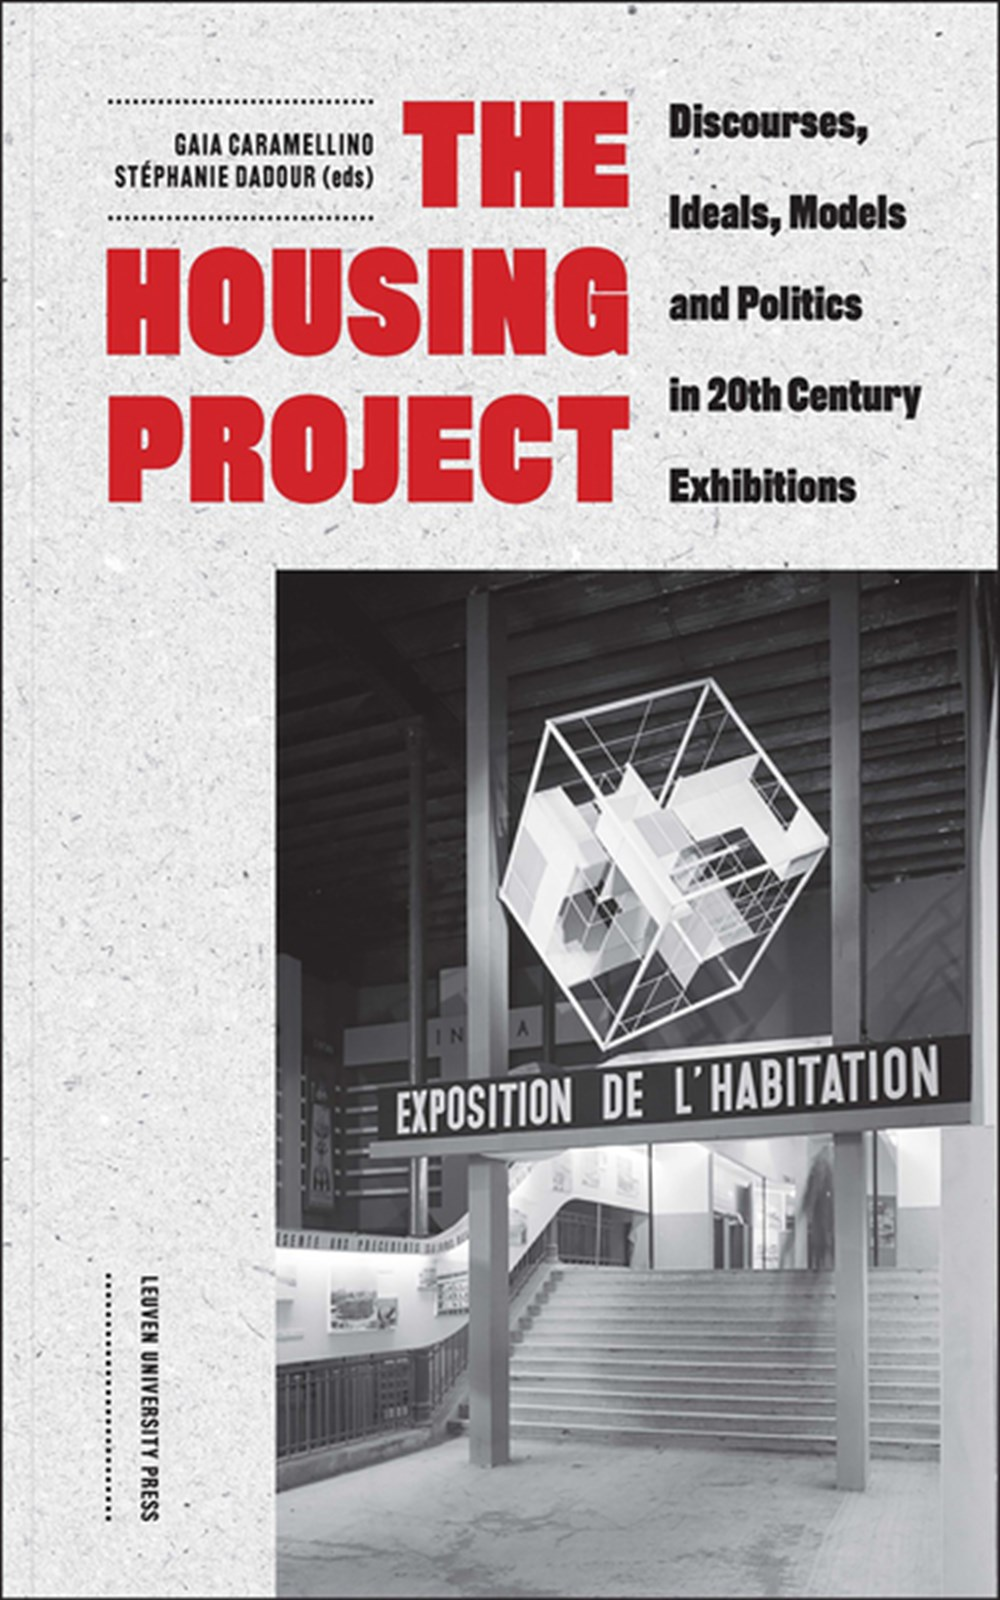 Housing Project Discourses, Ideals, Models, and Politics in 20th-Century Exhibitions